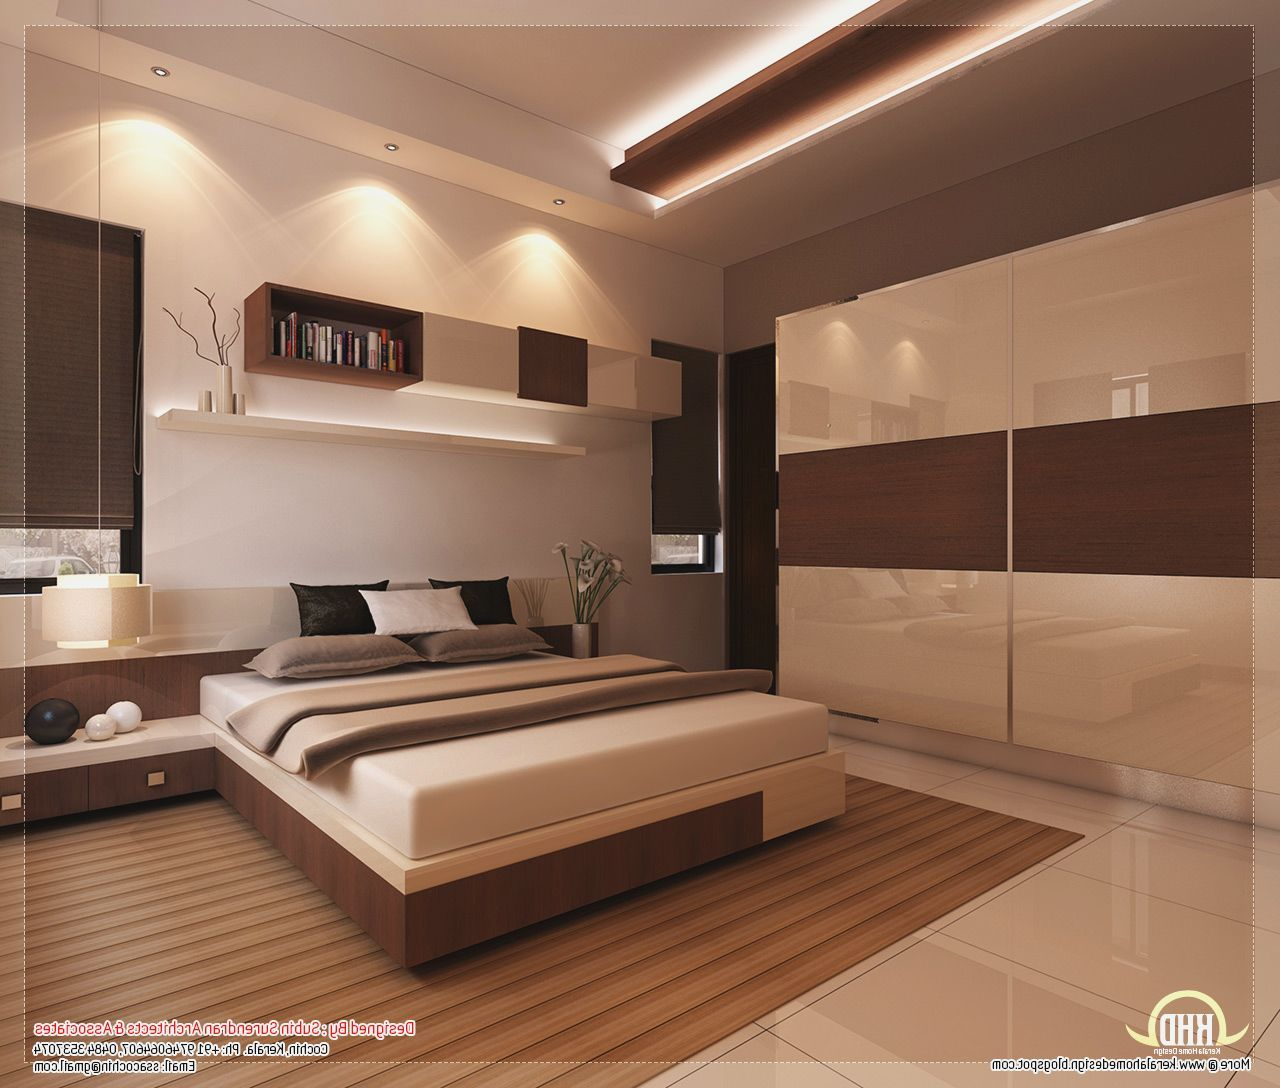 Bedroom designs india low cost more picture bedroom for Simple indian bedroom interior design ideas